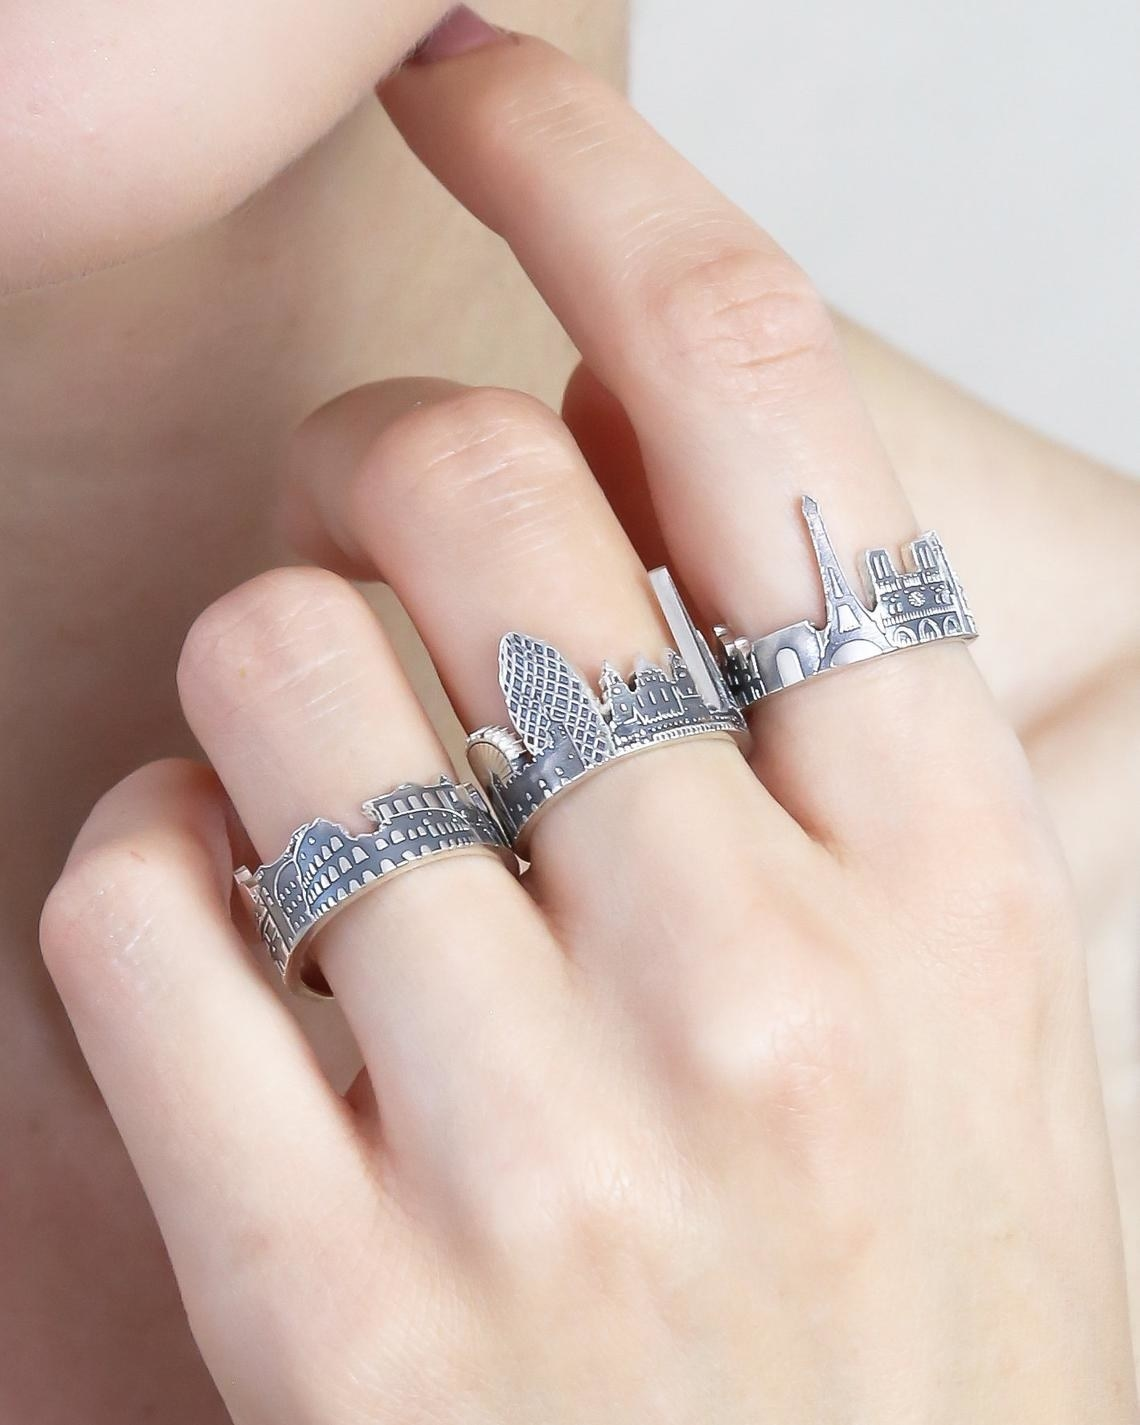 Model with three rings on hand: one with the Roman Colisseum, One of London with the Eye and Buckingham Palace, one of Paris with the Arc d'Triomphe, Eiffel Tower, And Notre Dame